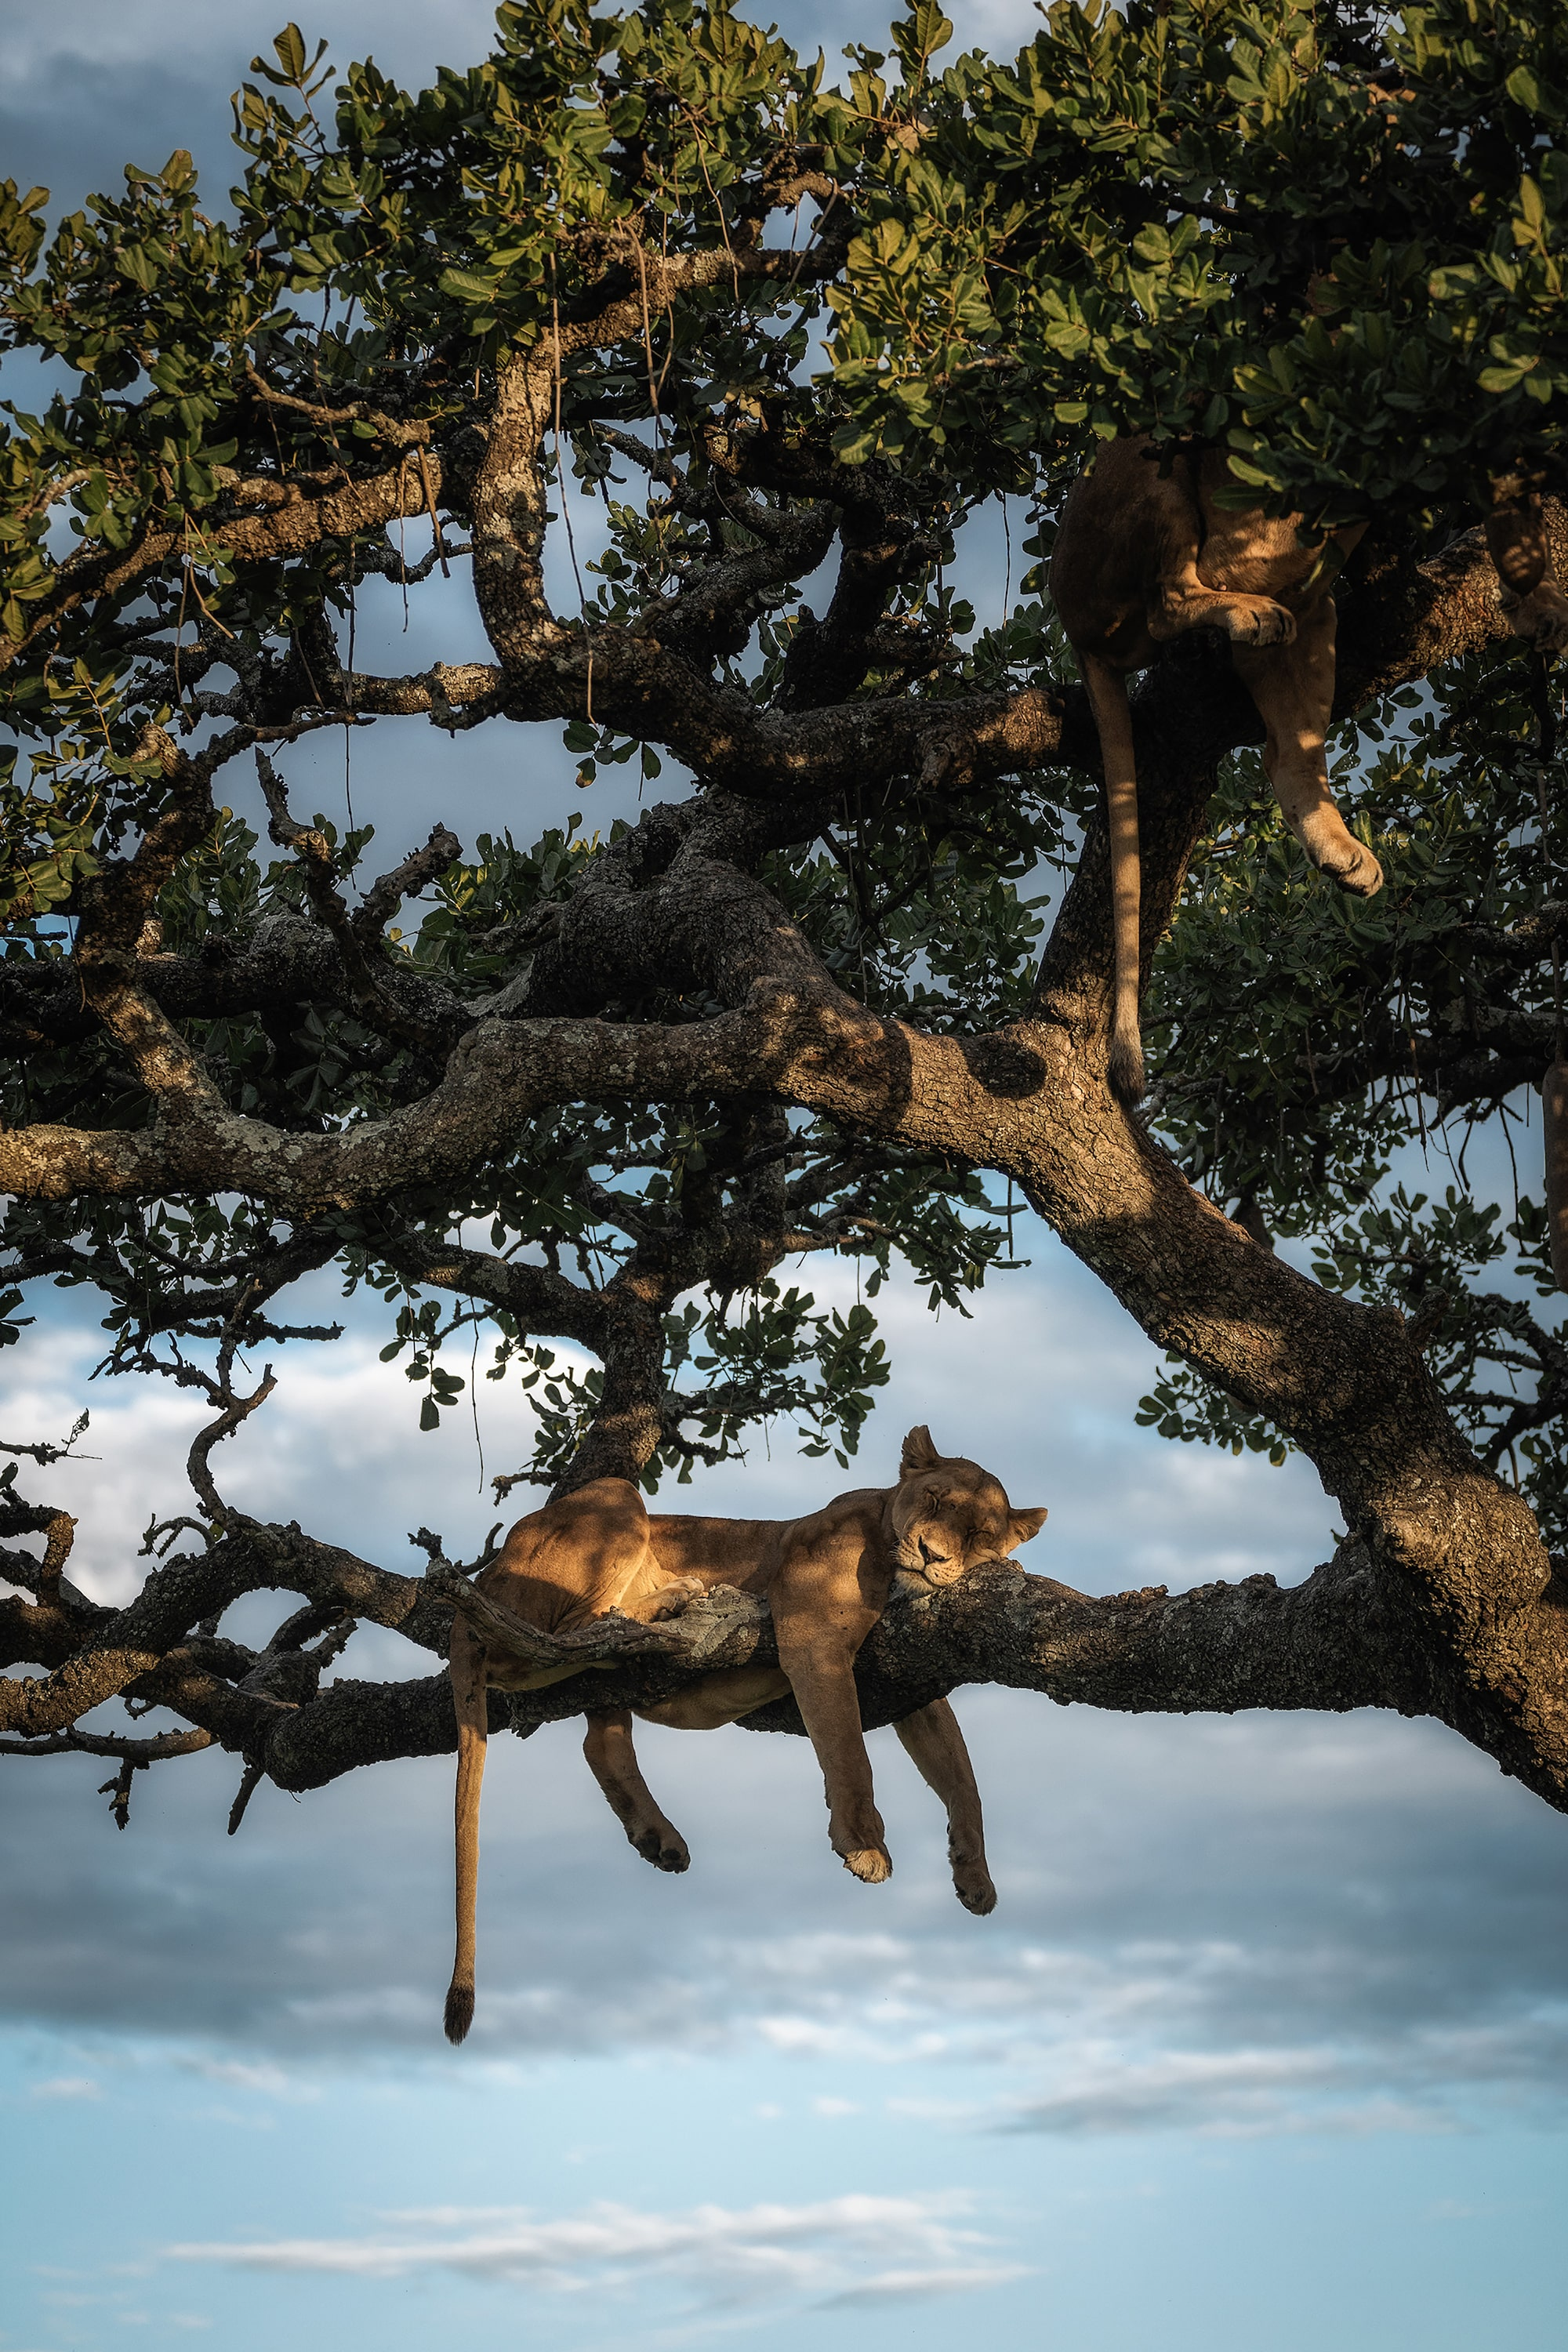 chris schmid sony alpha 9 a lioness lies sleeping in a tree with her eyes closed